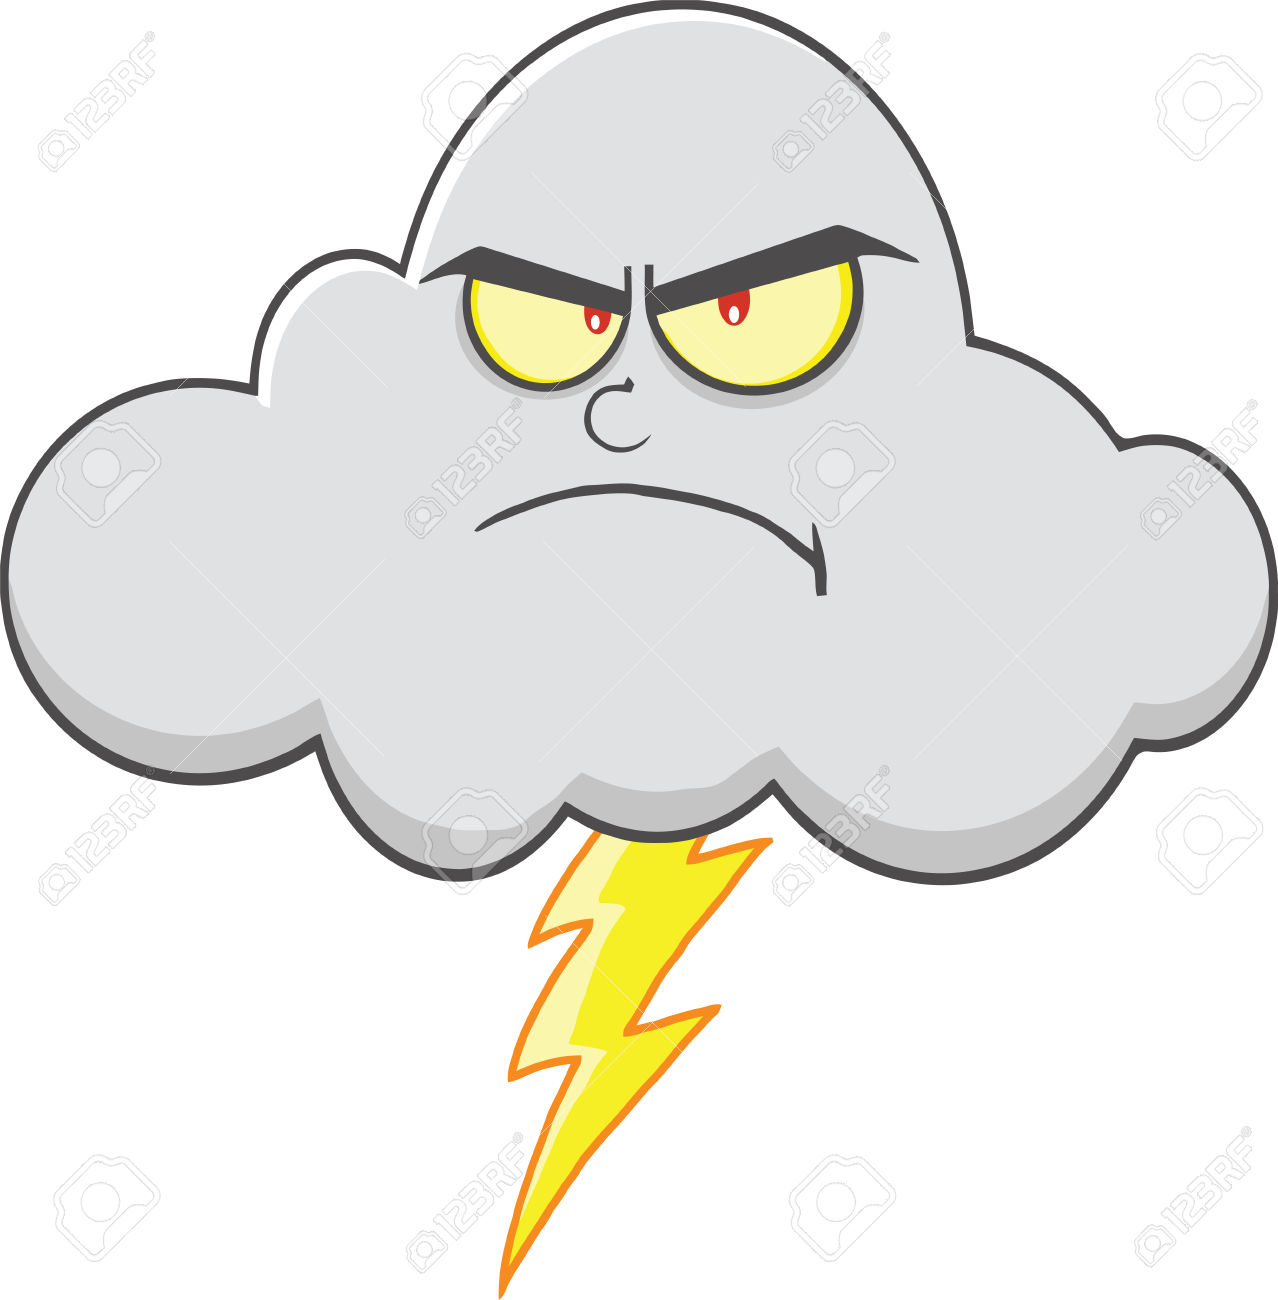 Free Cloud Lightning Cliparts, Download Free Clip Art, Free.